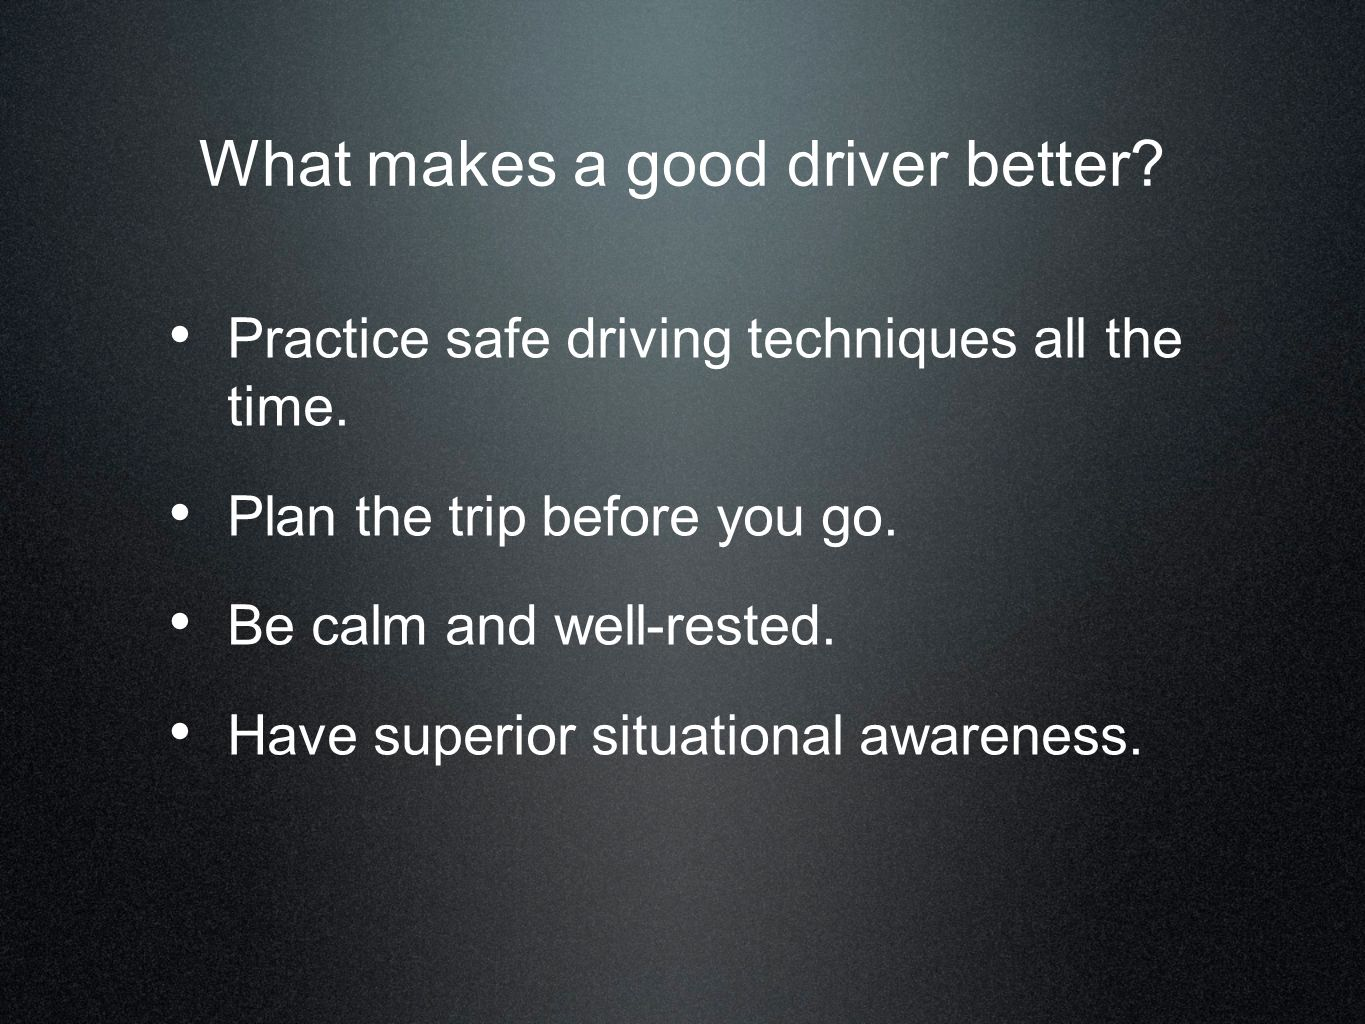 What makes a good driver better